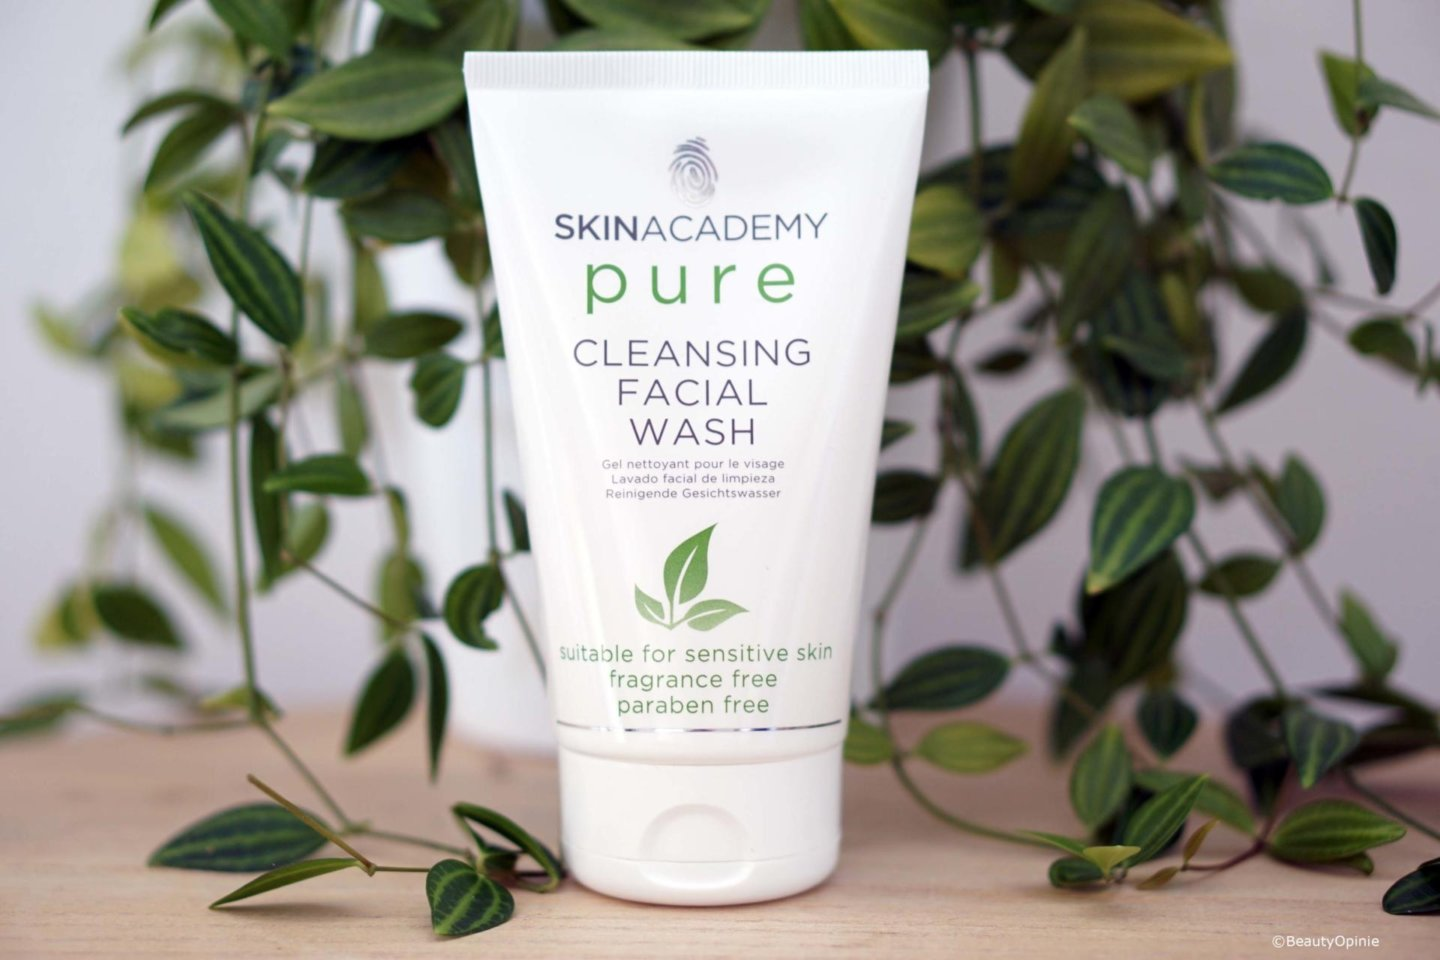 review Skinacademy pure Cleansing facial wash